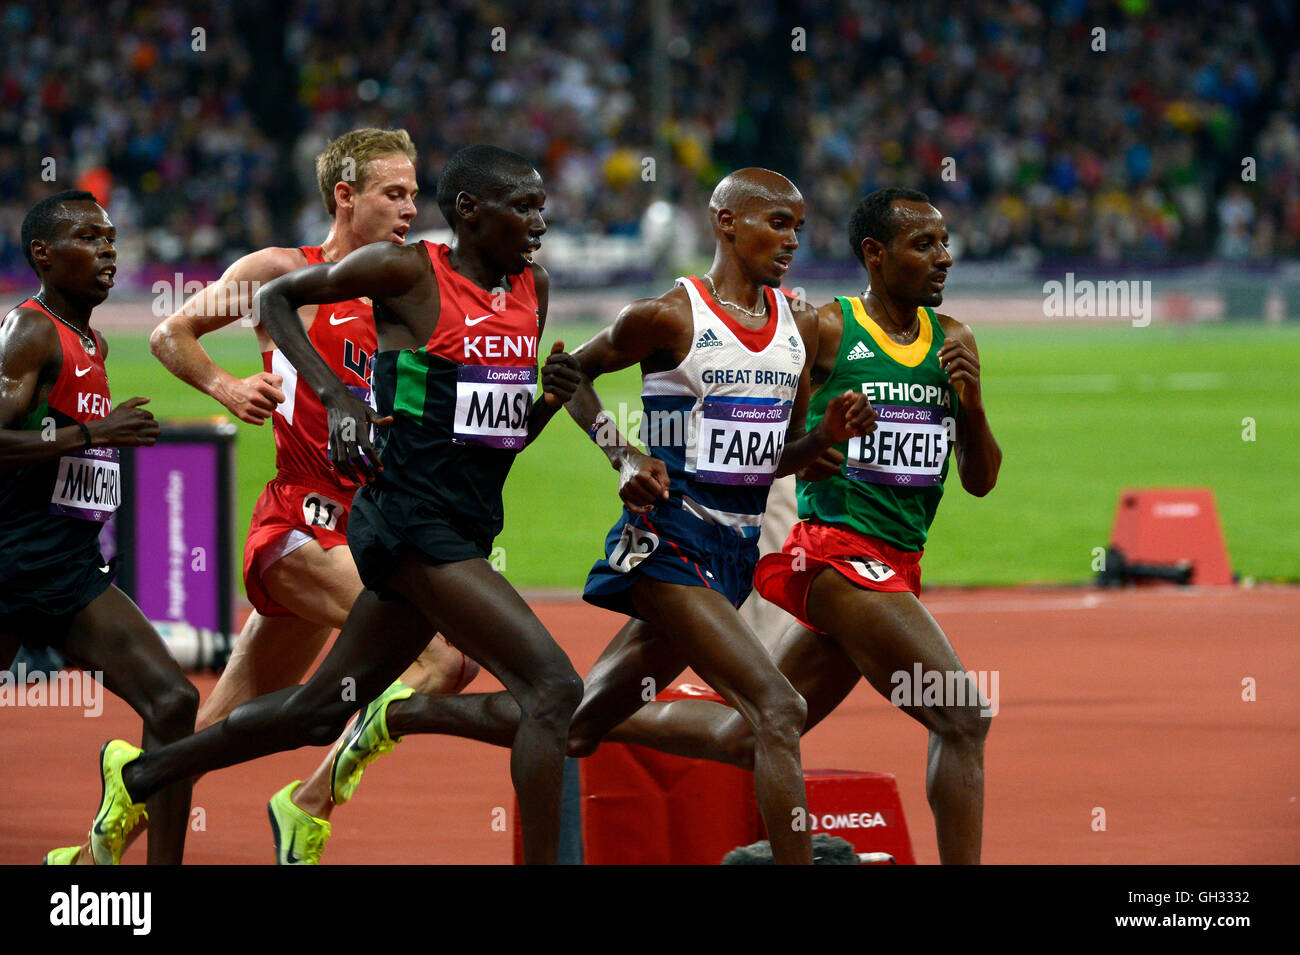 London 2012  - Olympics:   Athletics - Men's 10,000 Meter final.  Mohamed Farah of Great Britain winning the - Stock Image